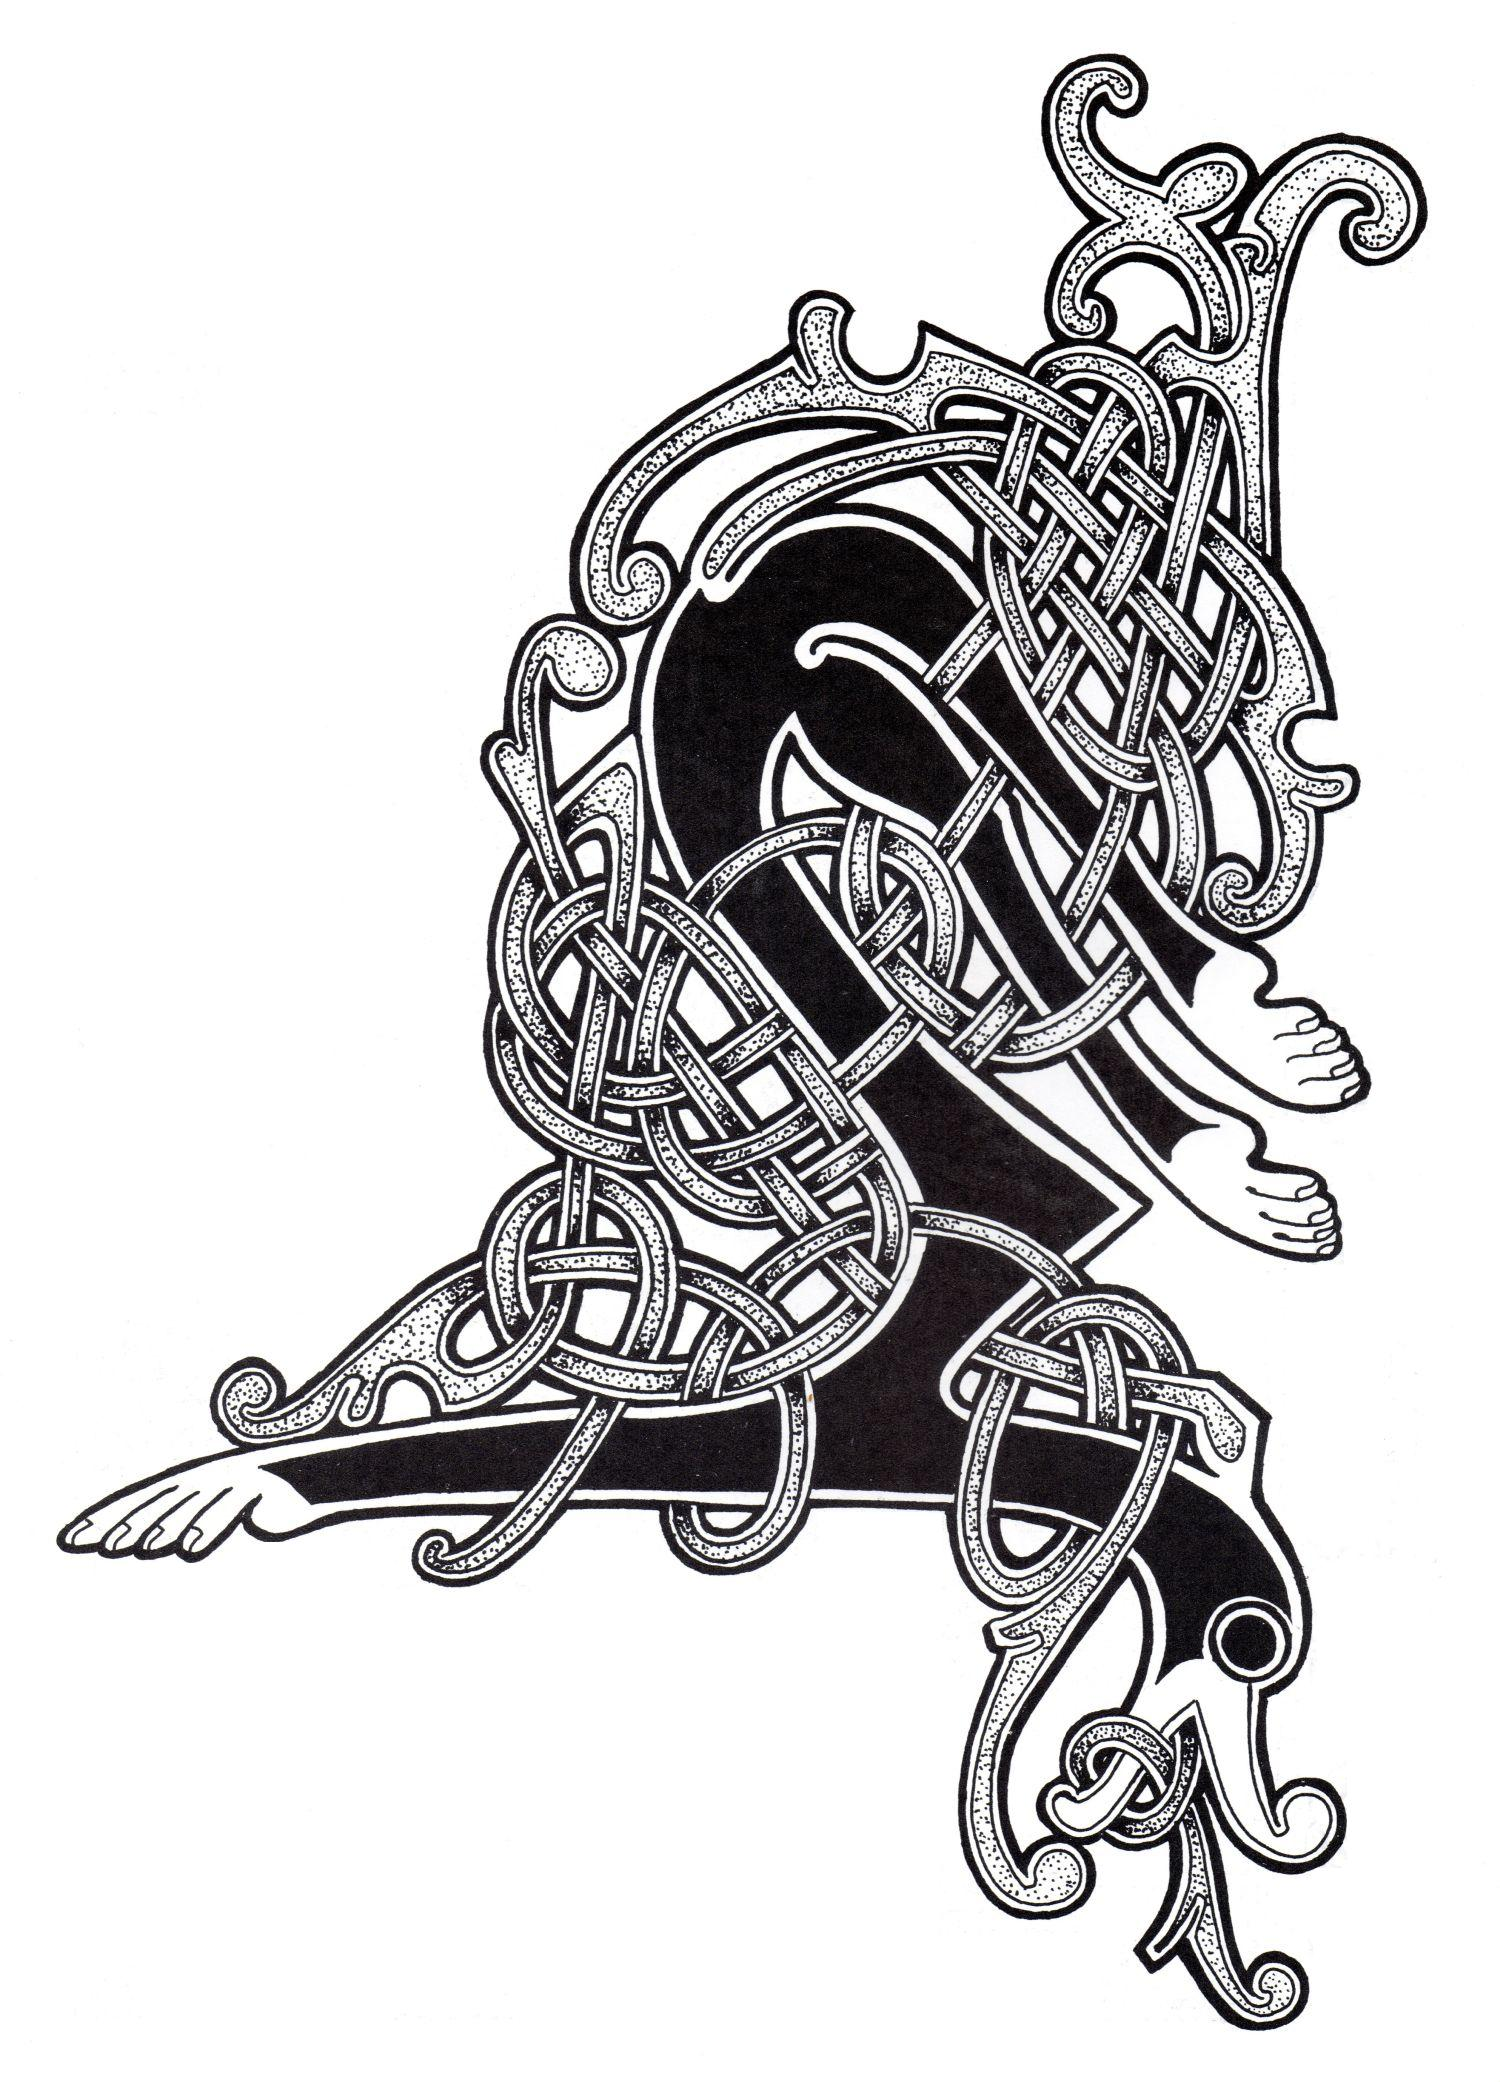 Magnificent abstract Celtic art design